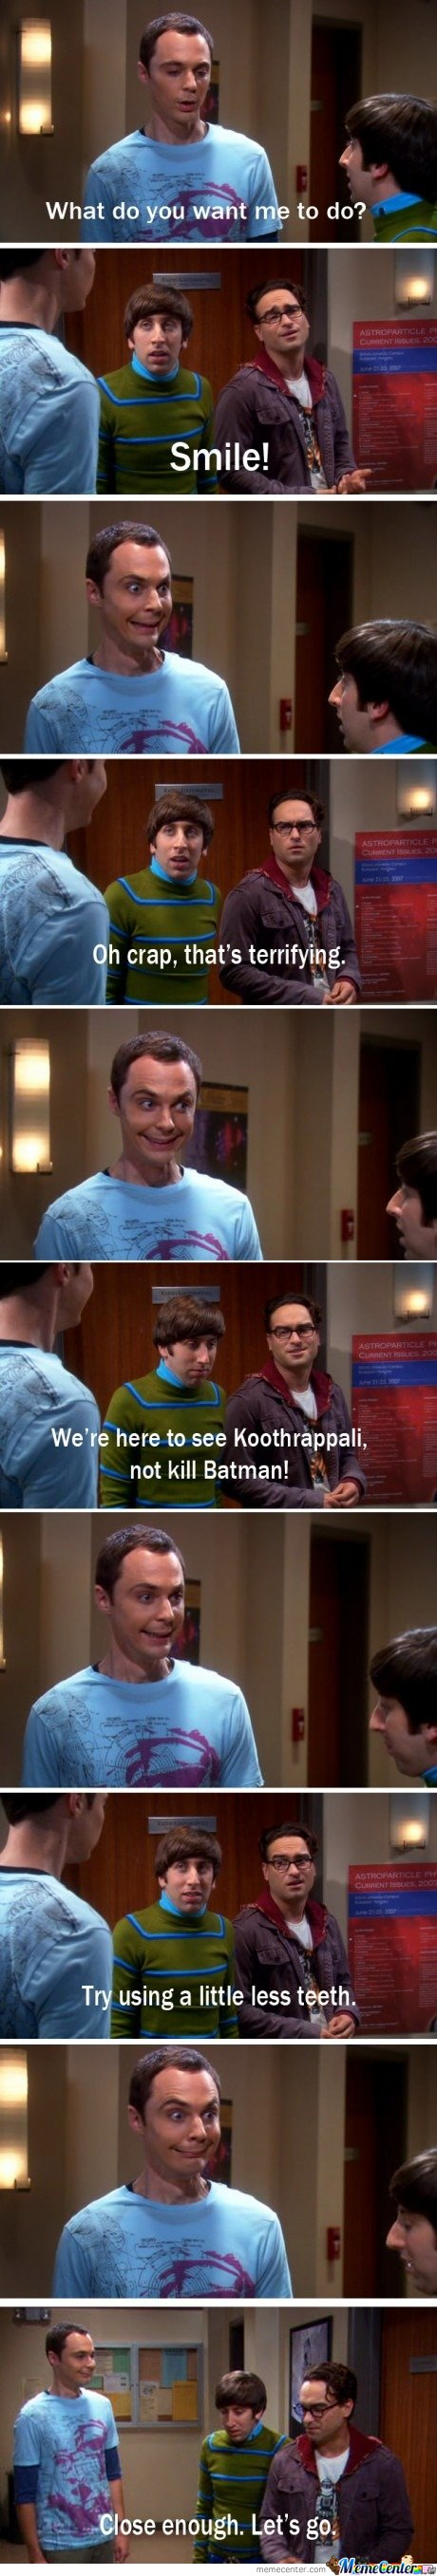 Sheldon : What do you want me to do ? Smile!